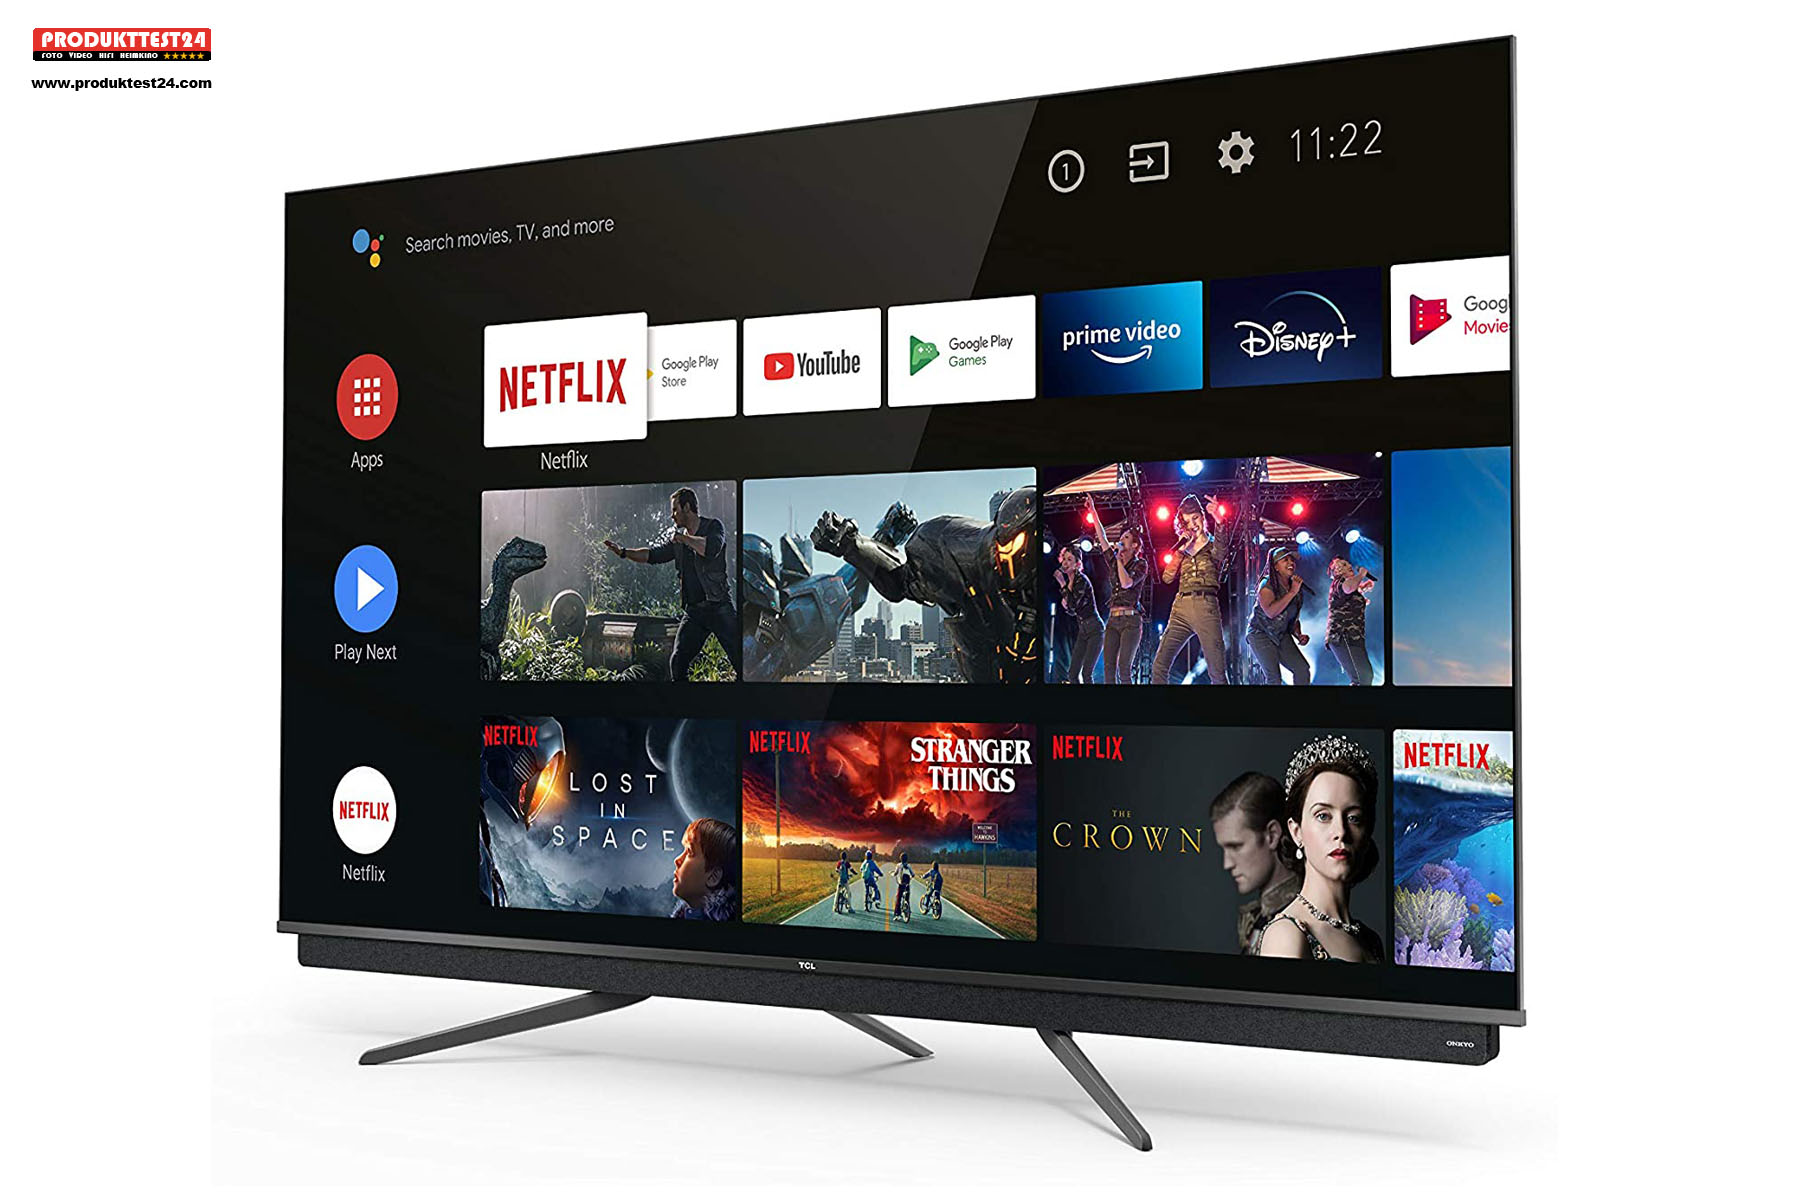 TCL 75C815 QLED 4K Ultra HD Fernseher mit HDR10+ und Dolby Vision IQ